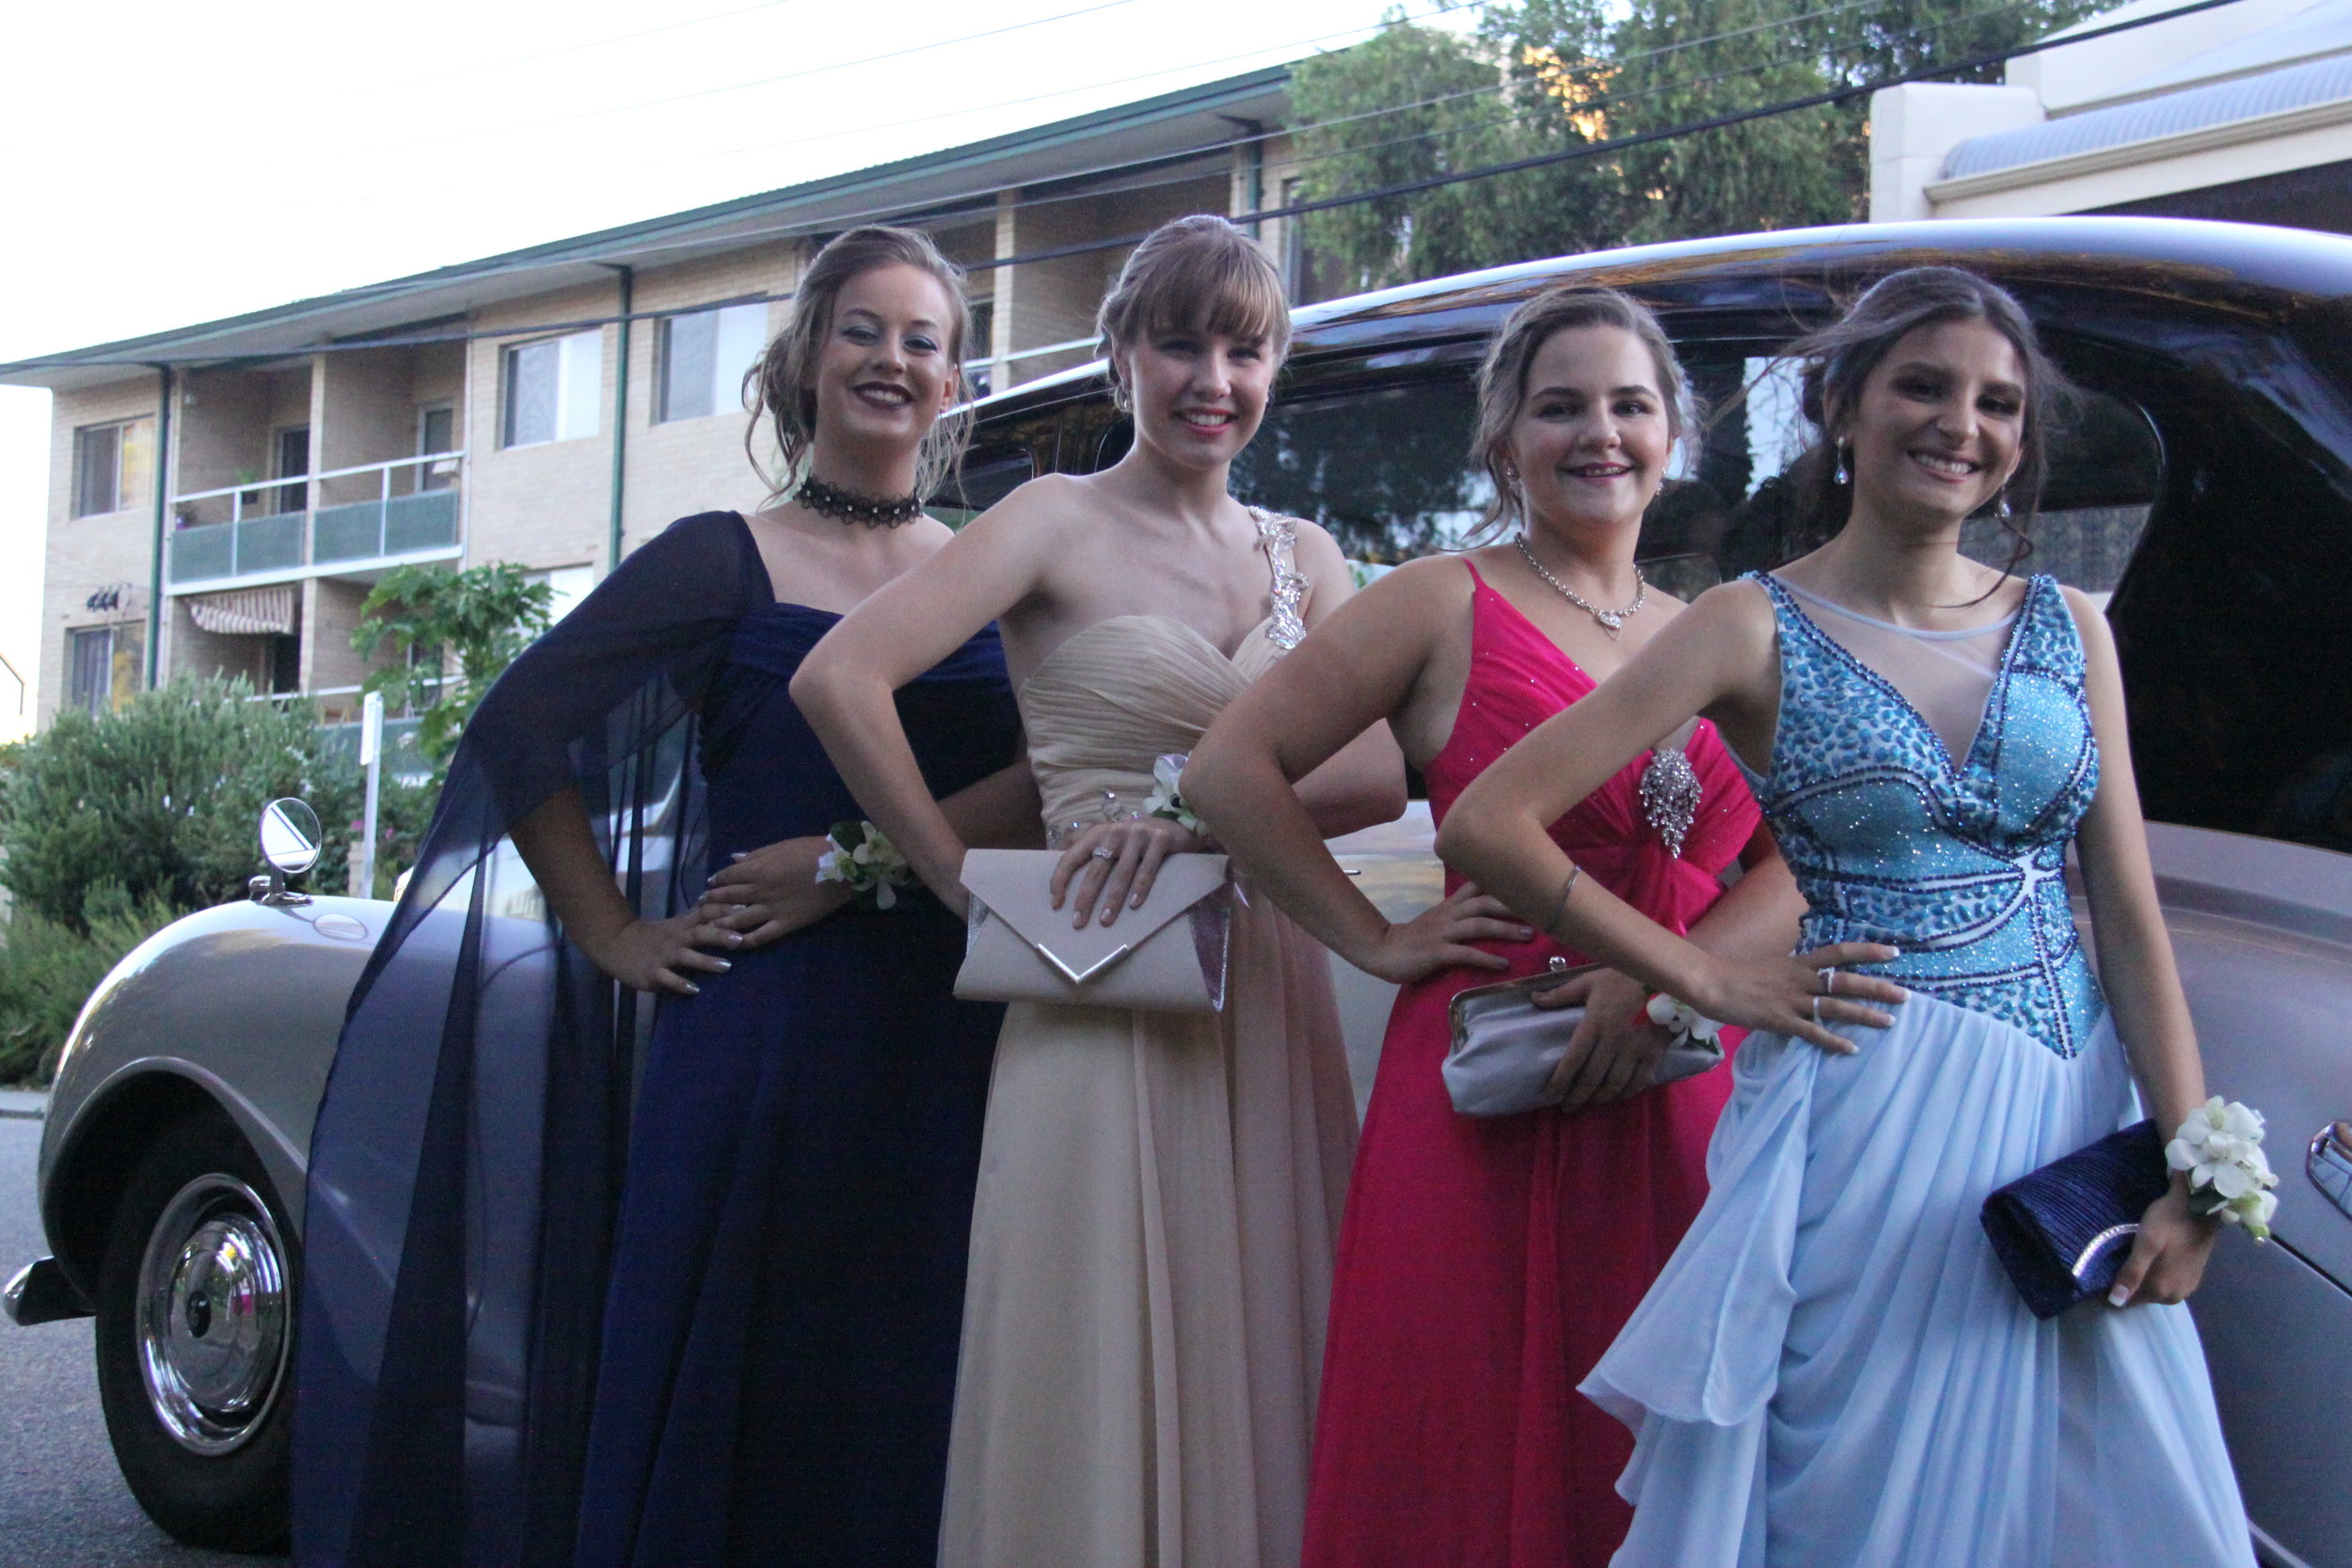 closer-limousine-with-ladies-very-nice-classics-wedding-cars-perth-school-ball.JPG